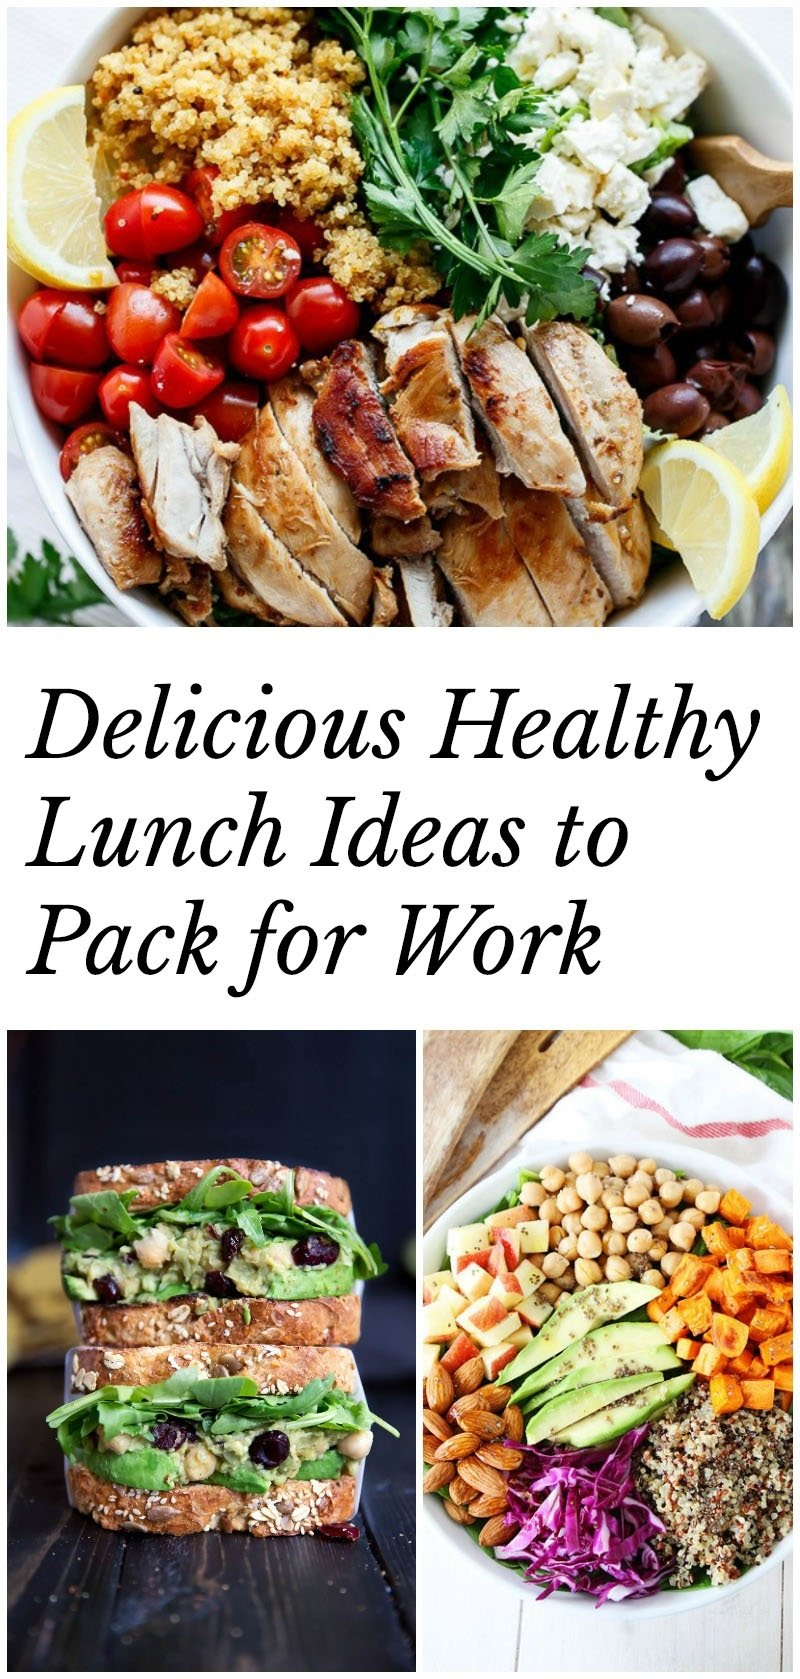 10 Elegant Healthy Lunch Ideas To Pack healthy lunch ideas to pack for work 40 recipes 5 2020